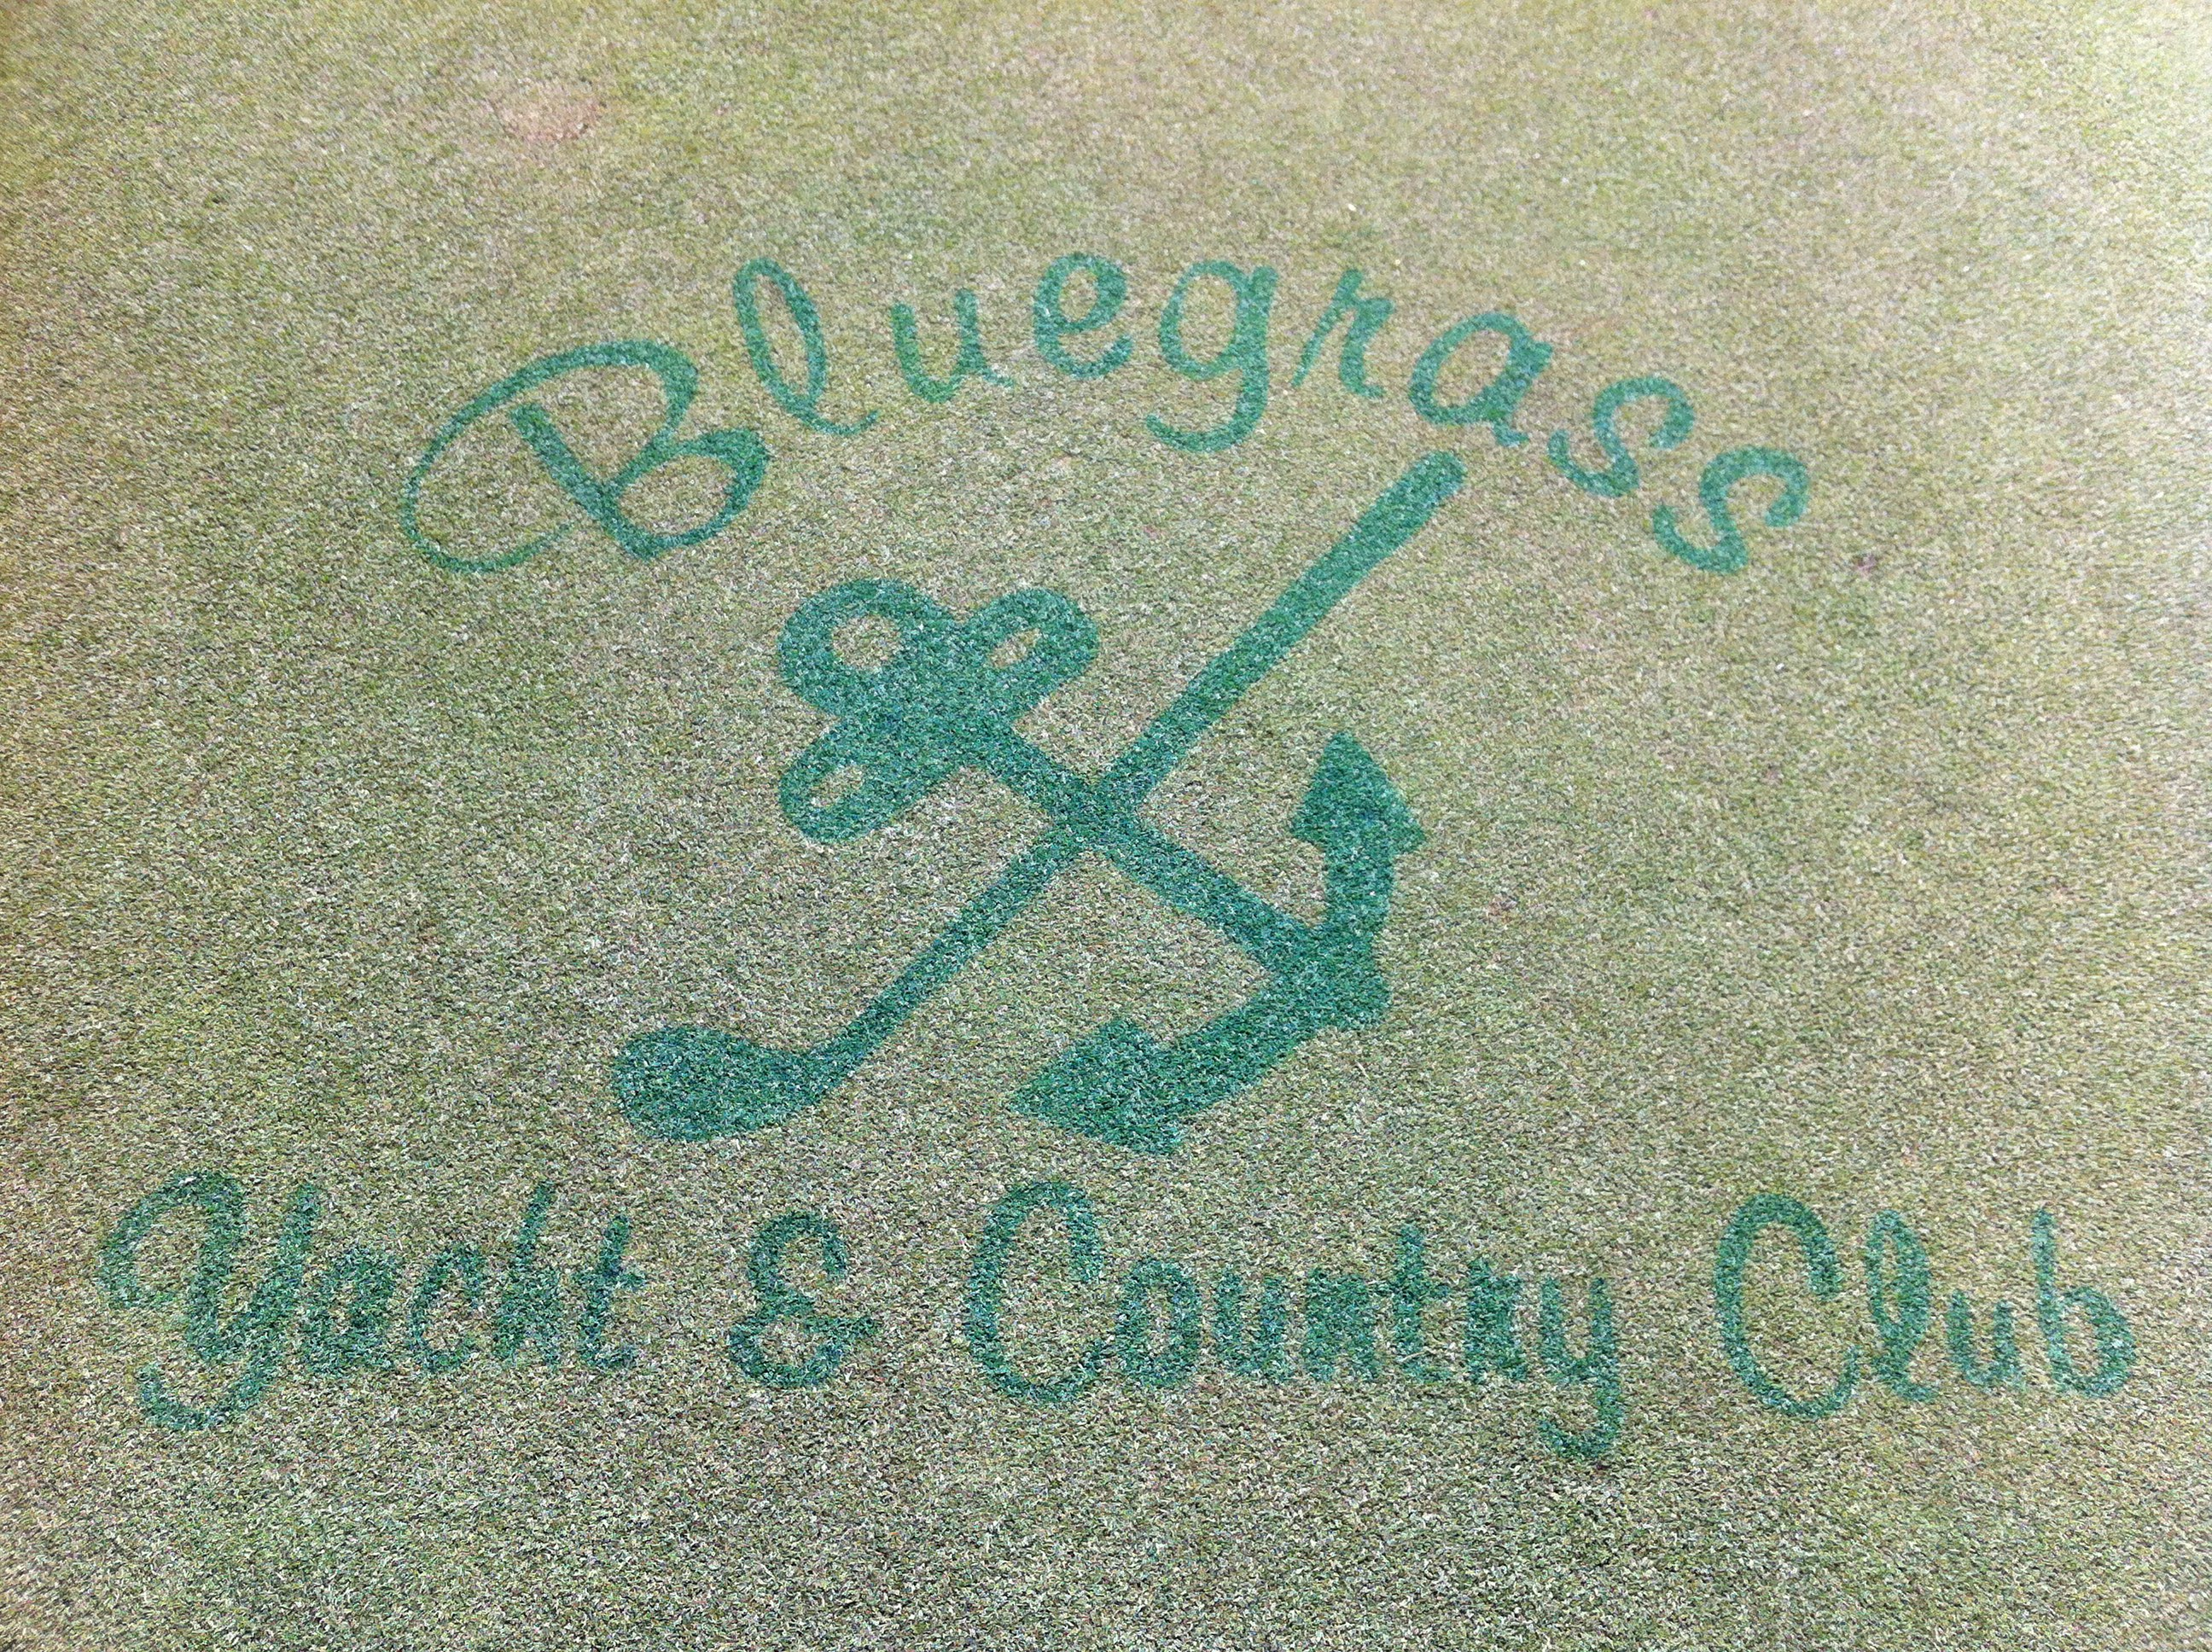 Logo Painted on the Putting Green